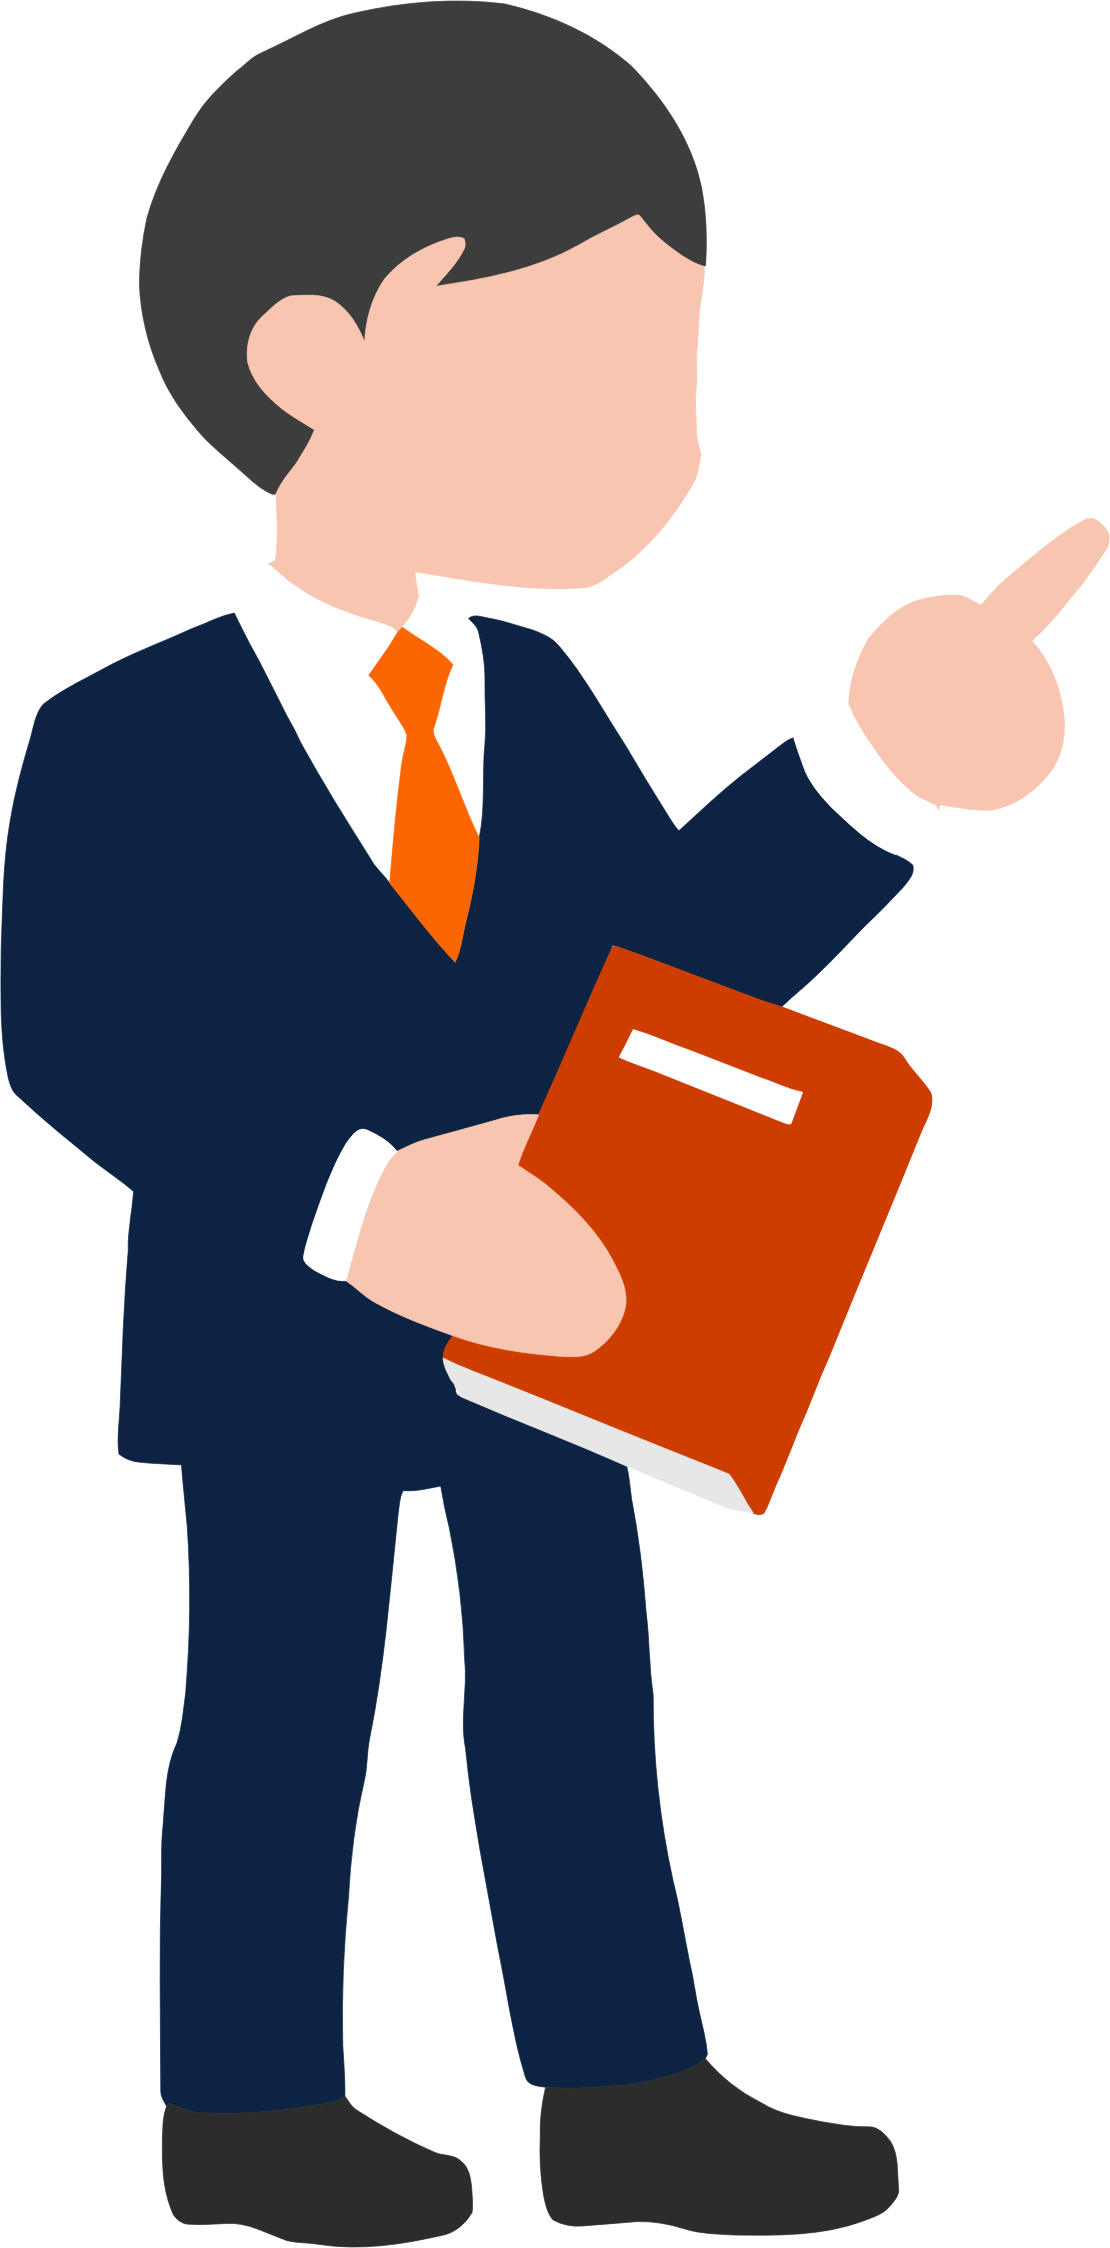 Man in suit cartoon png. Collection of clipart